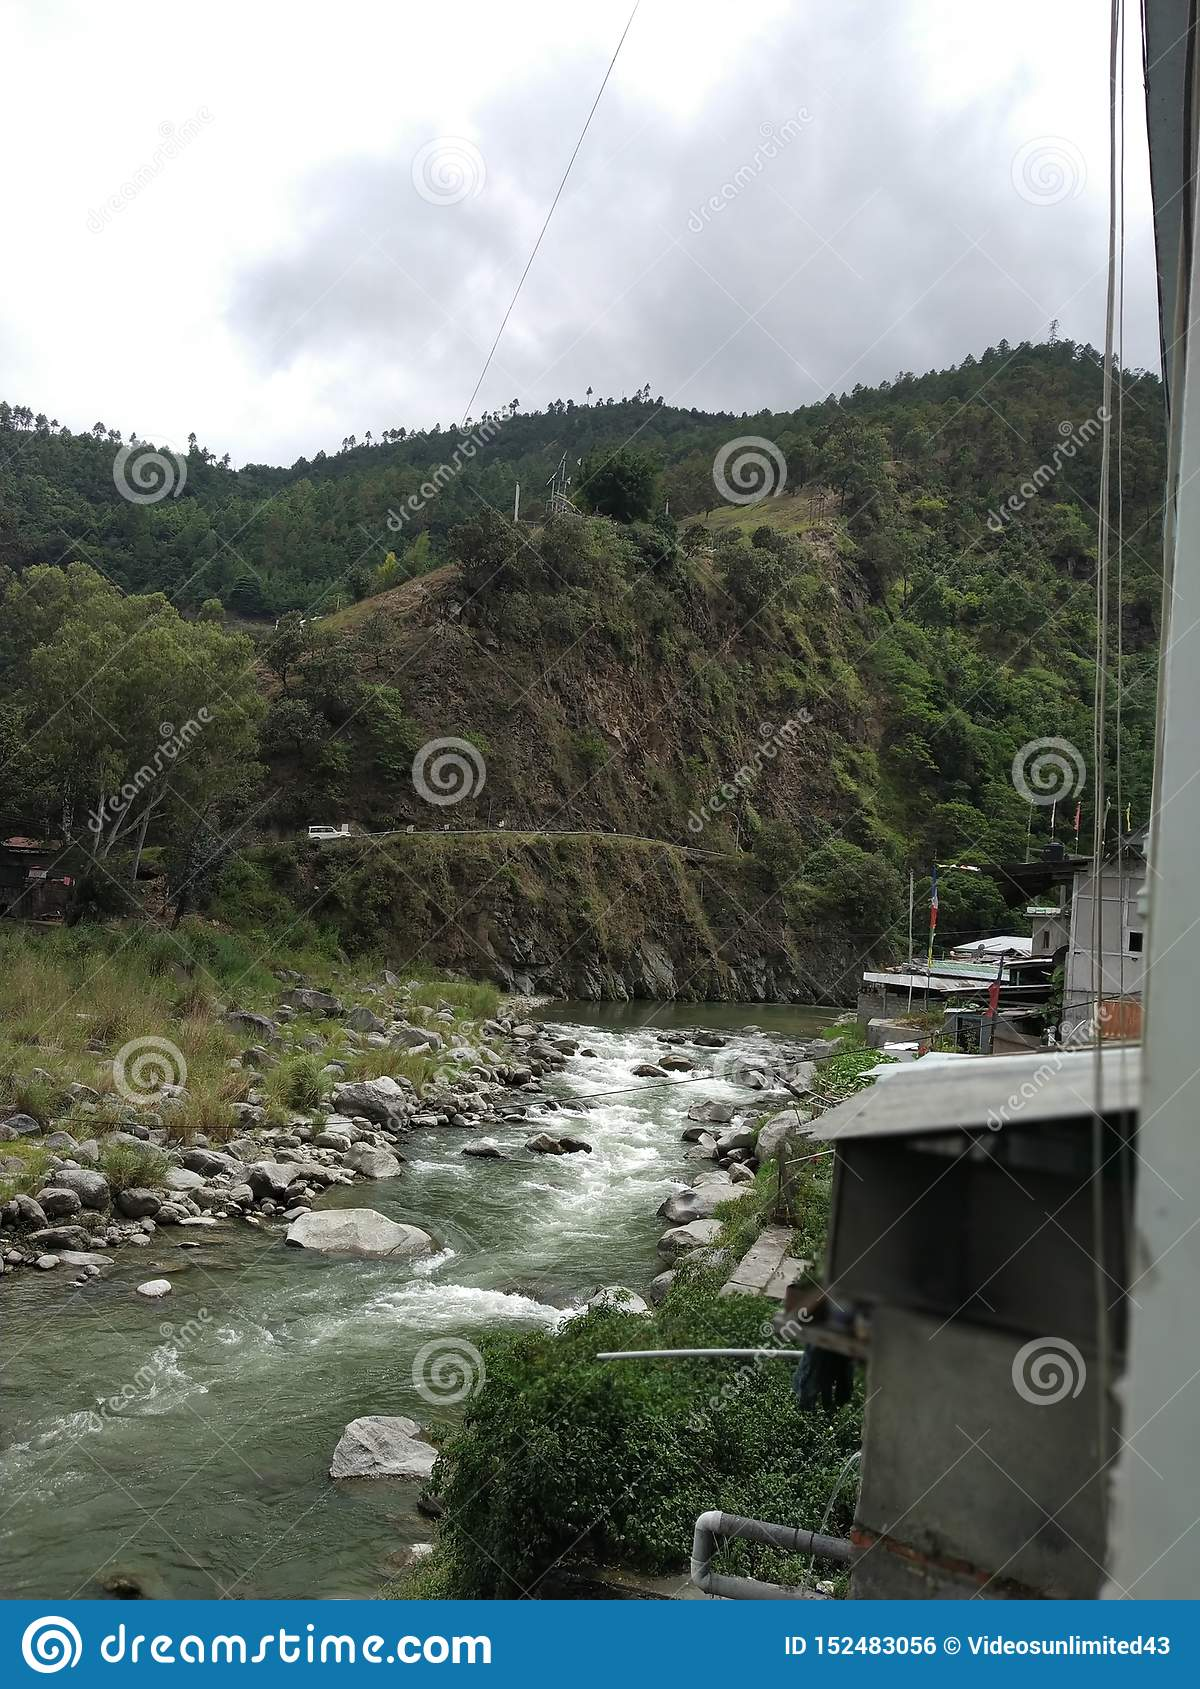 Indian photos It`s a mountain river view very nice place and